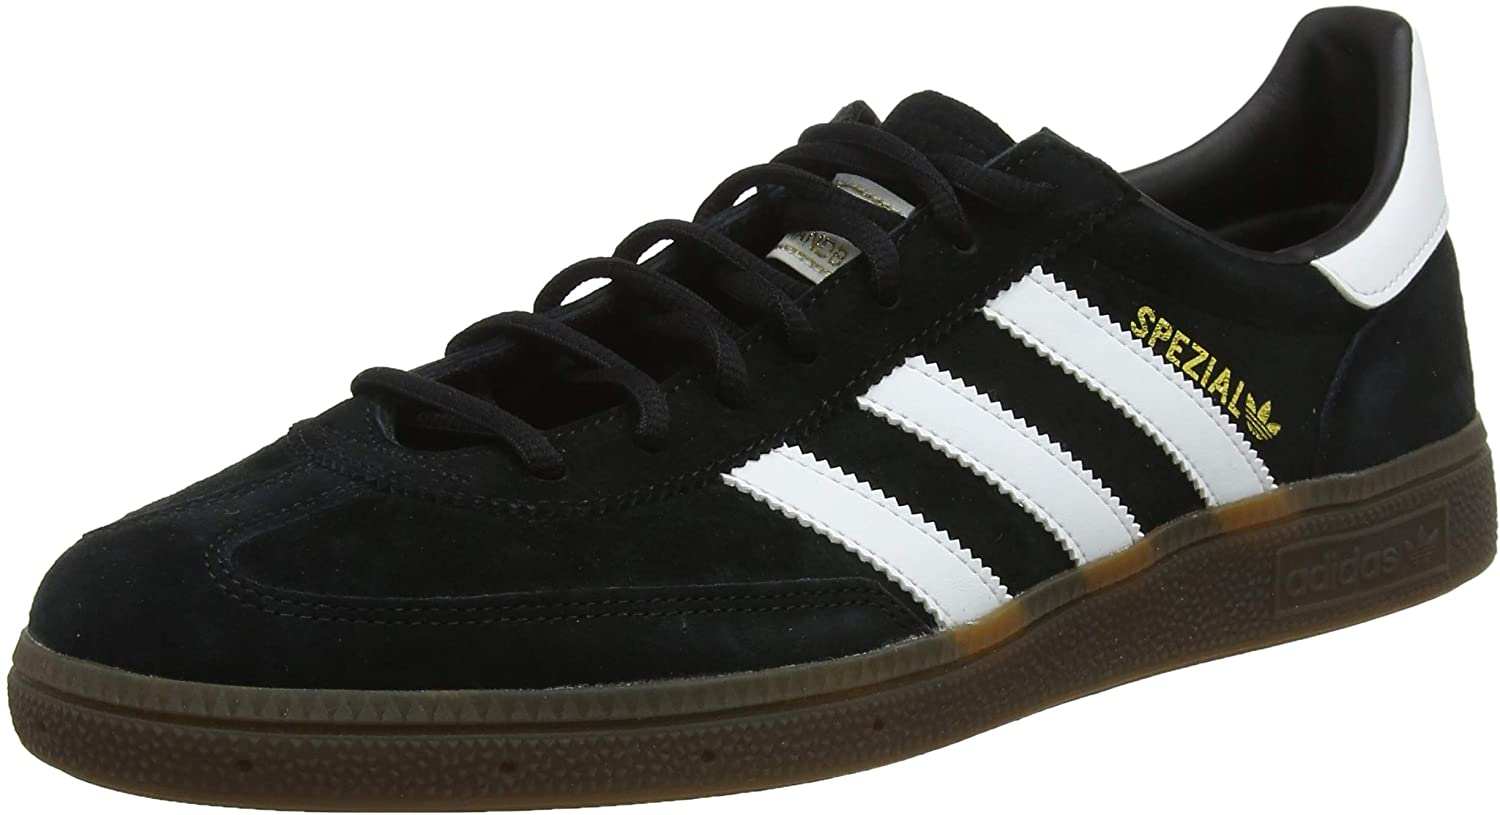 Adidas Handball Spezial Mens Sneakers Black